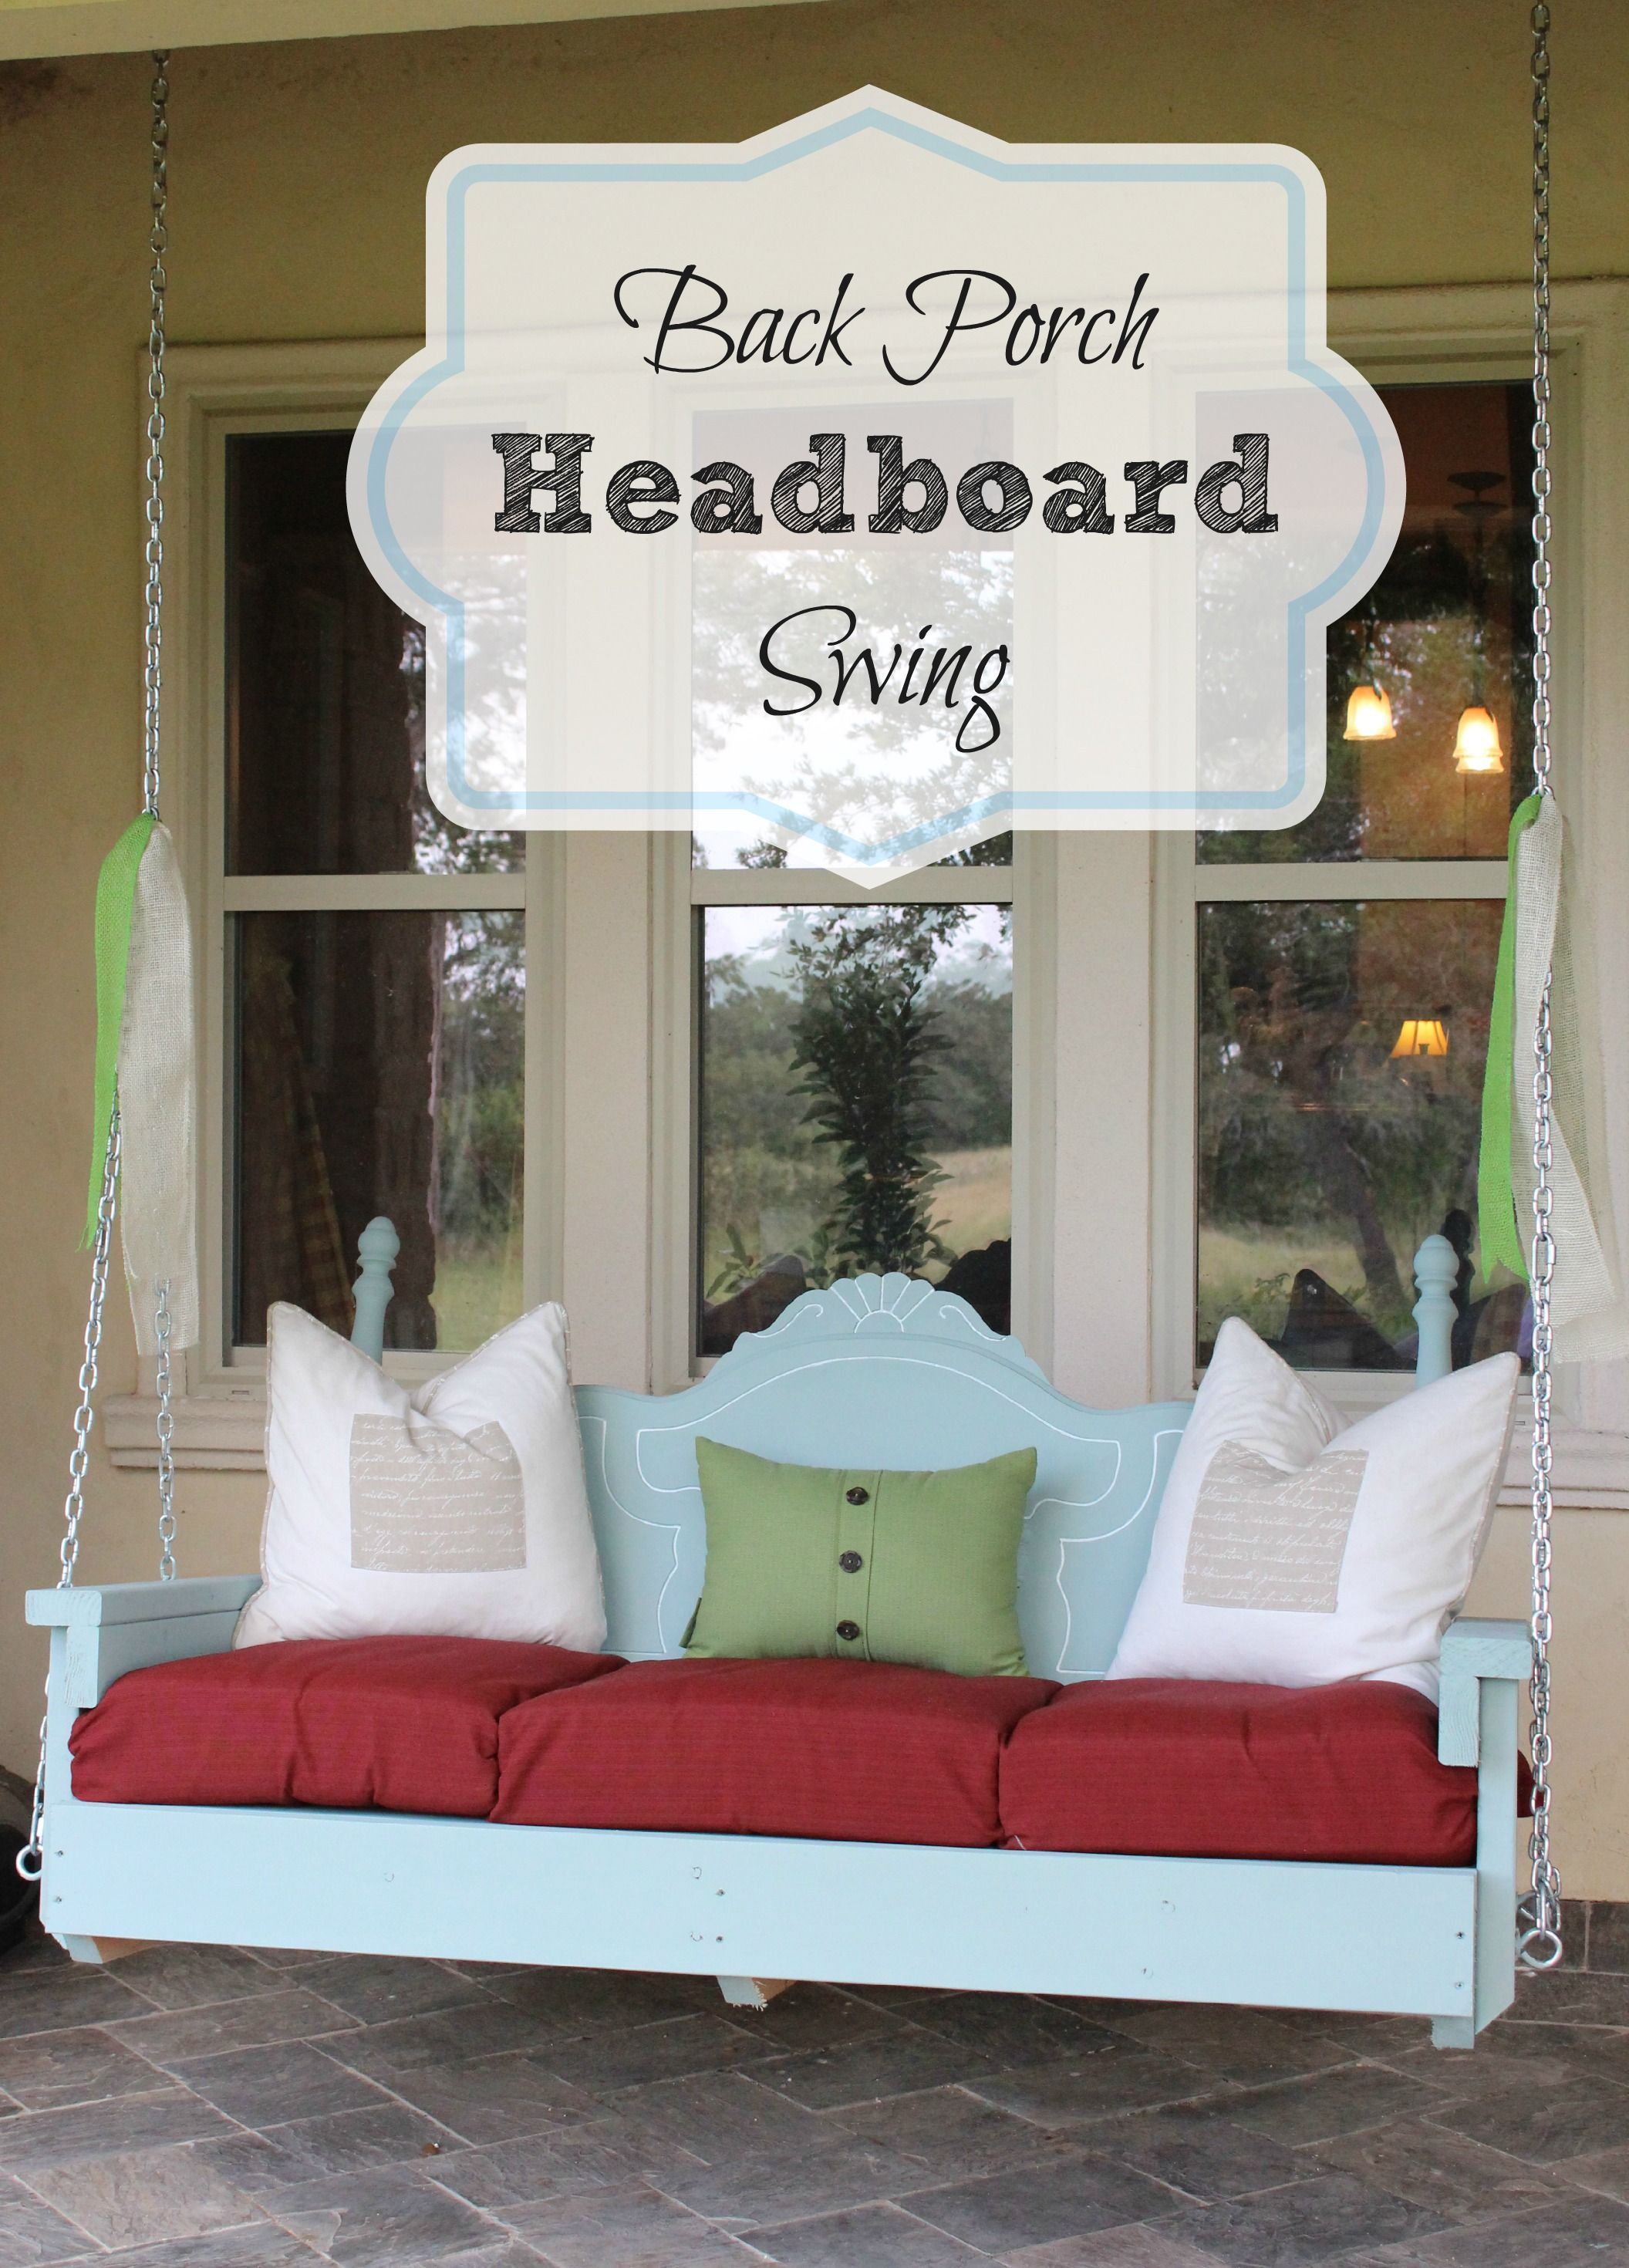 Back Porch Headboard Swing - Make A Swing Out Of An Old Bed ... 15 Tolle Handgemachte Veranda Schaukel Designs